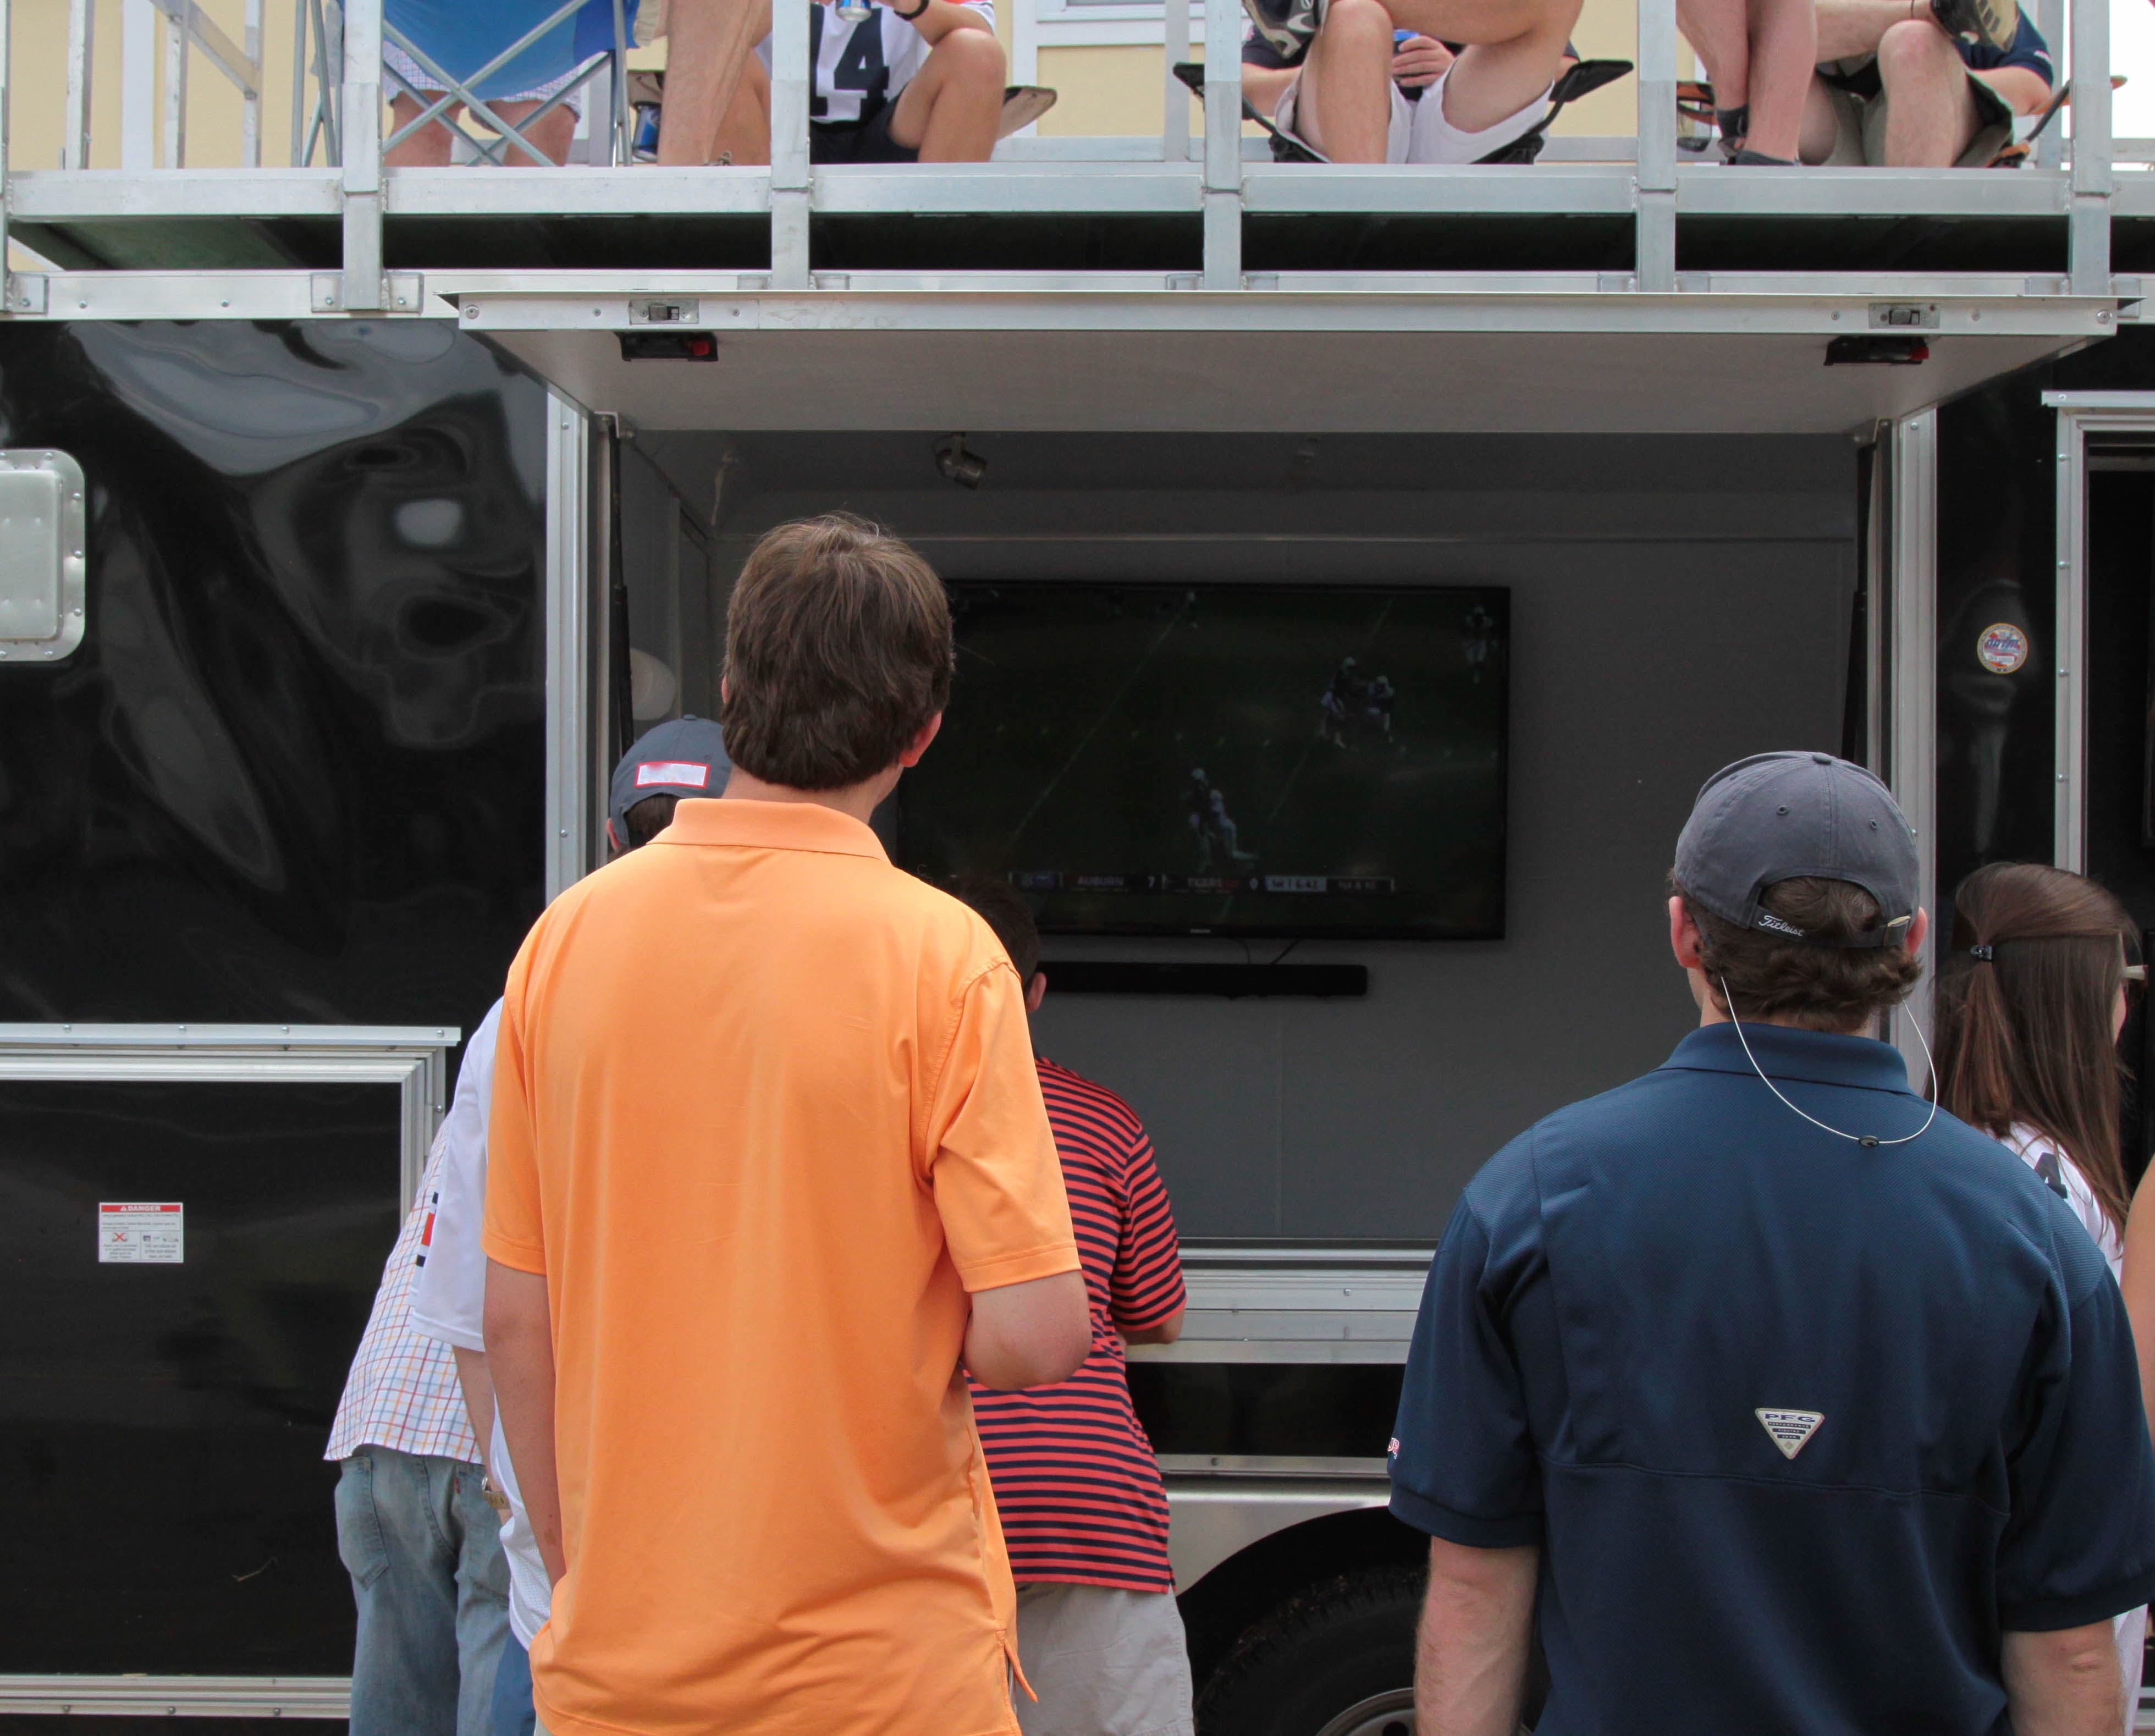 Tailgating-trailer-event-tailgate-king